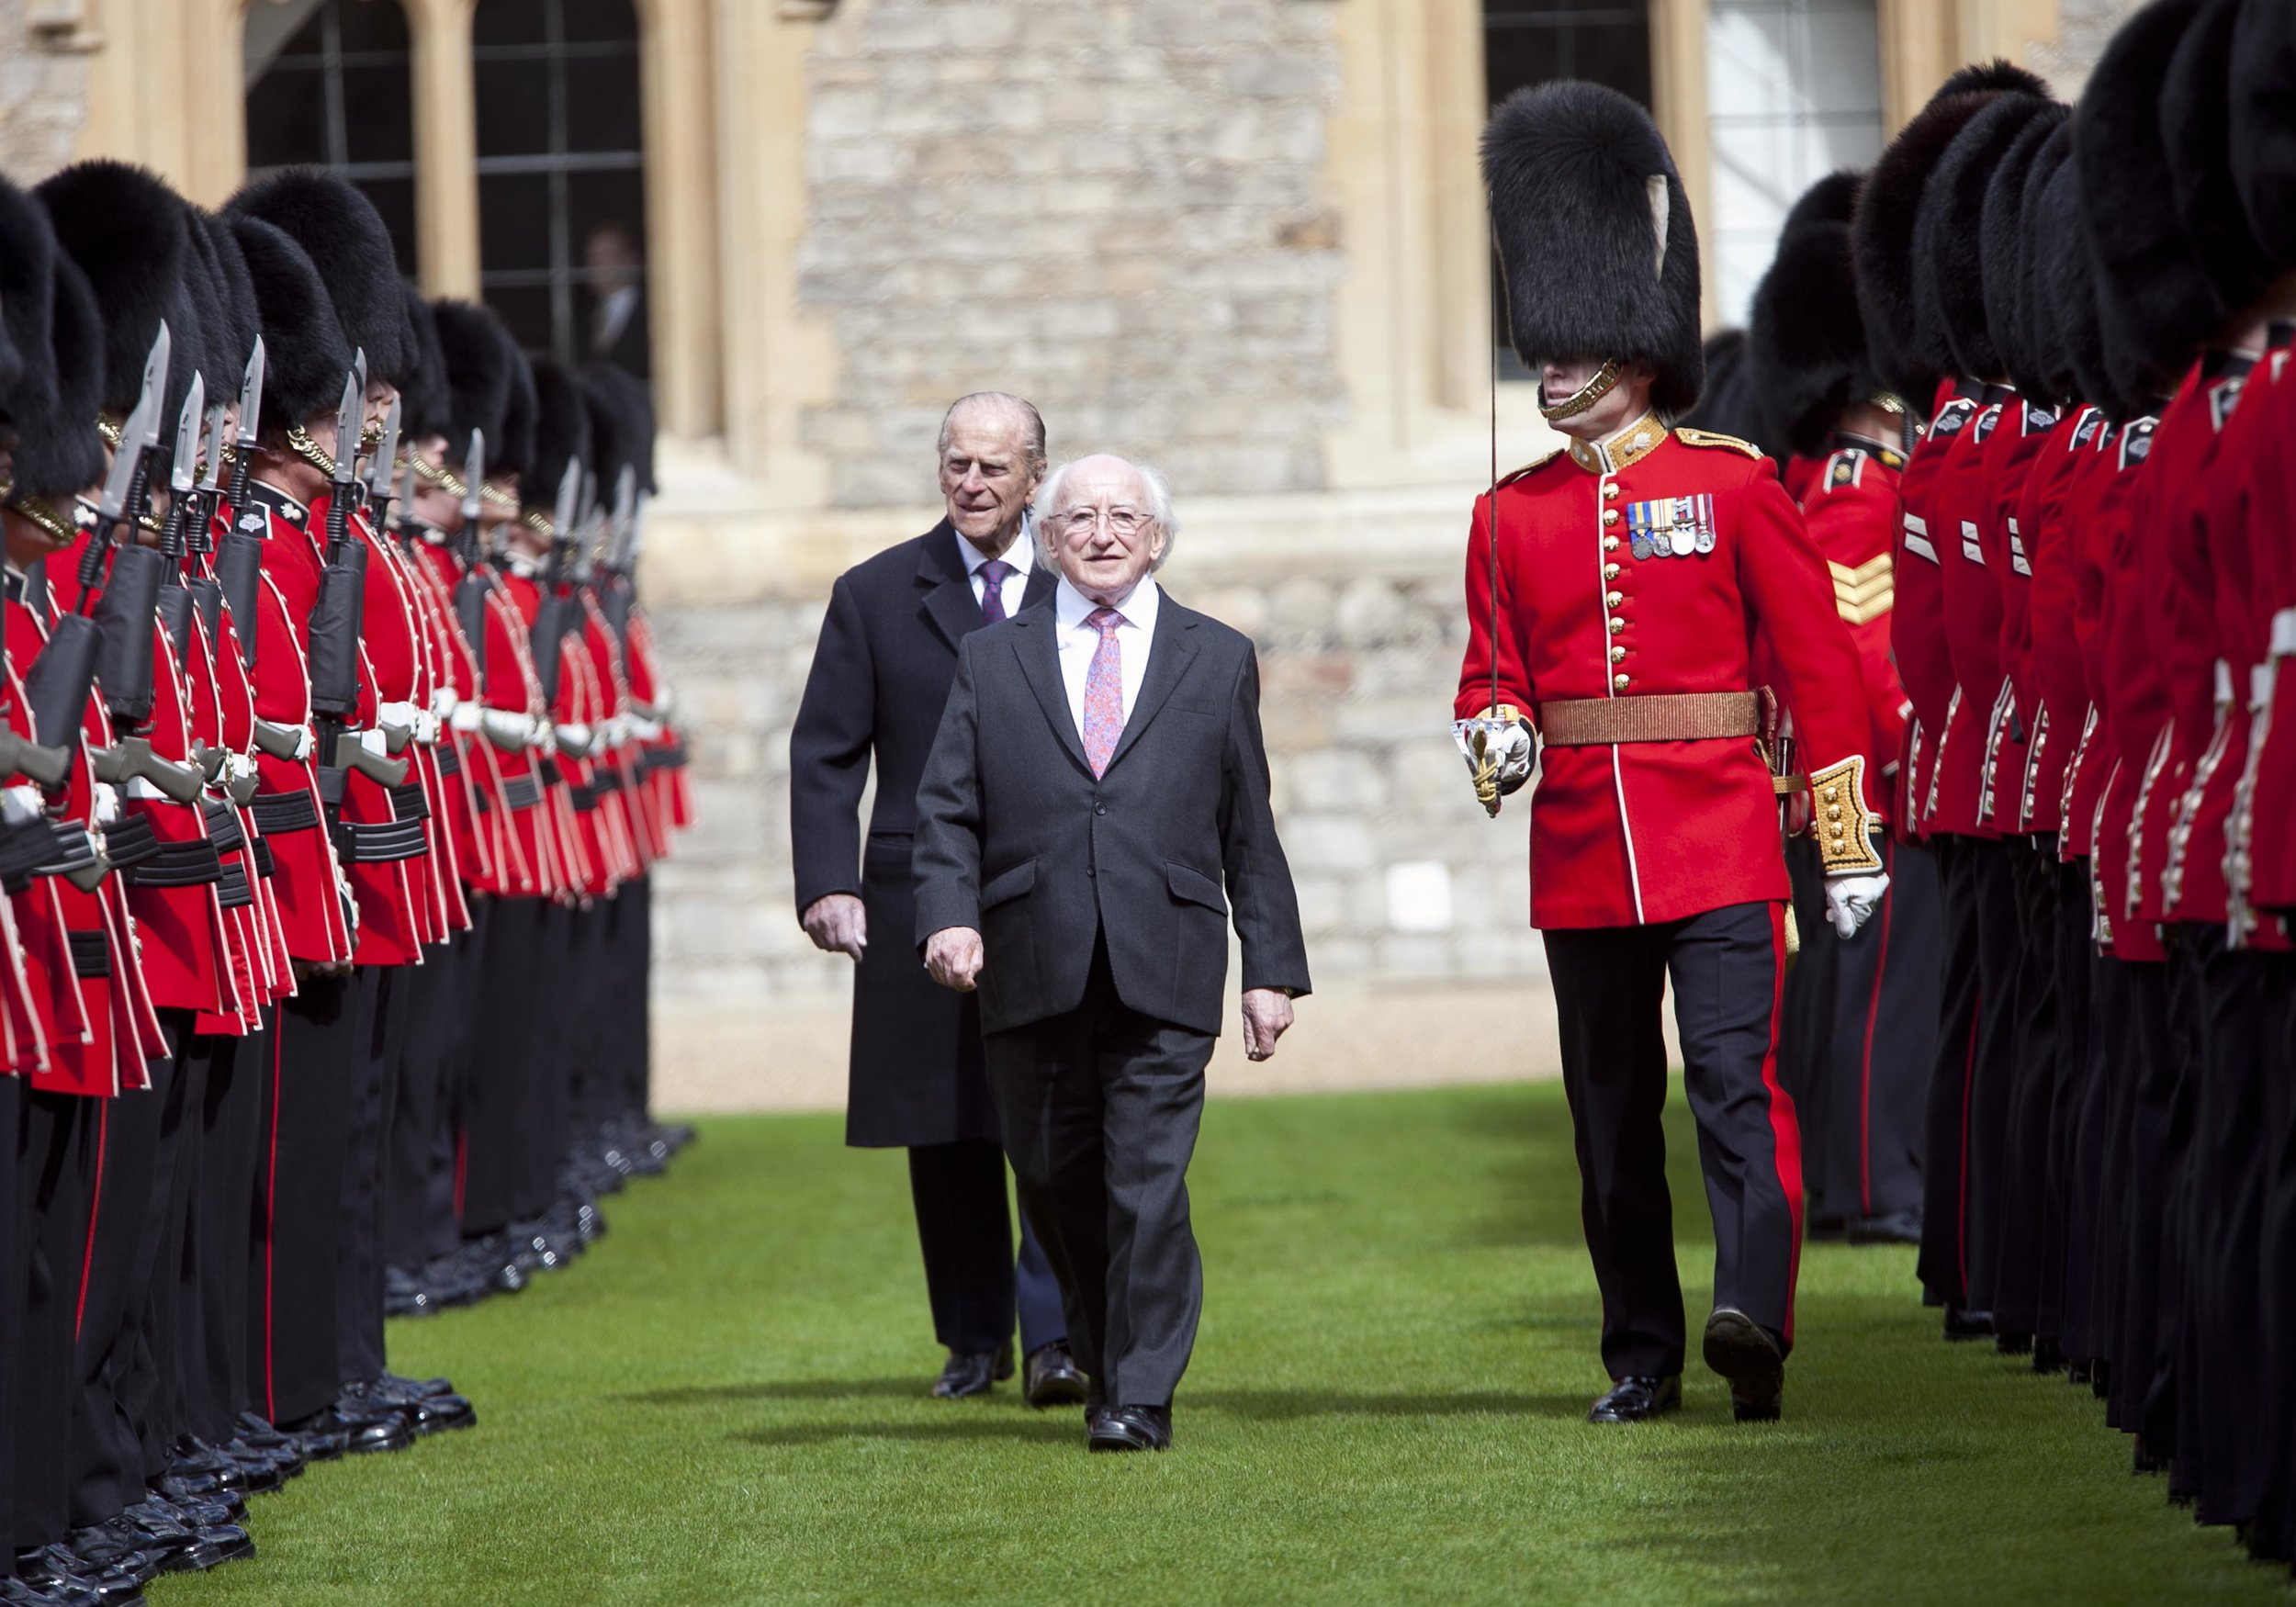 President Michael D Higgins historic state visit to the UK wearing his bespoke Johnson Tailor Suit